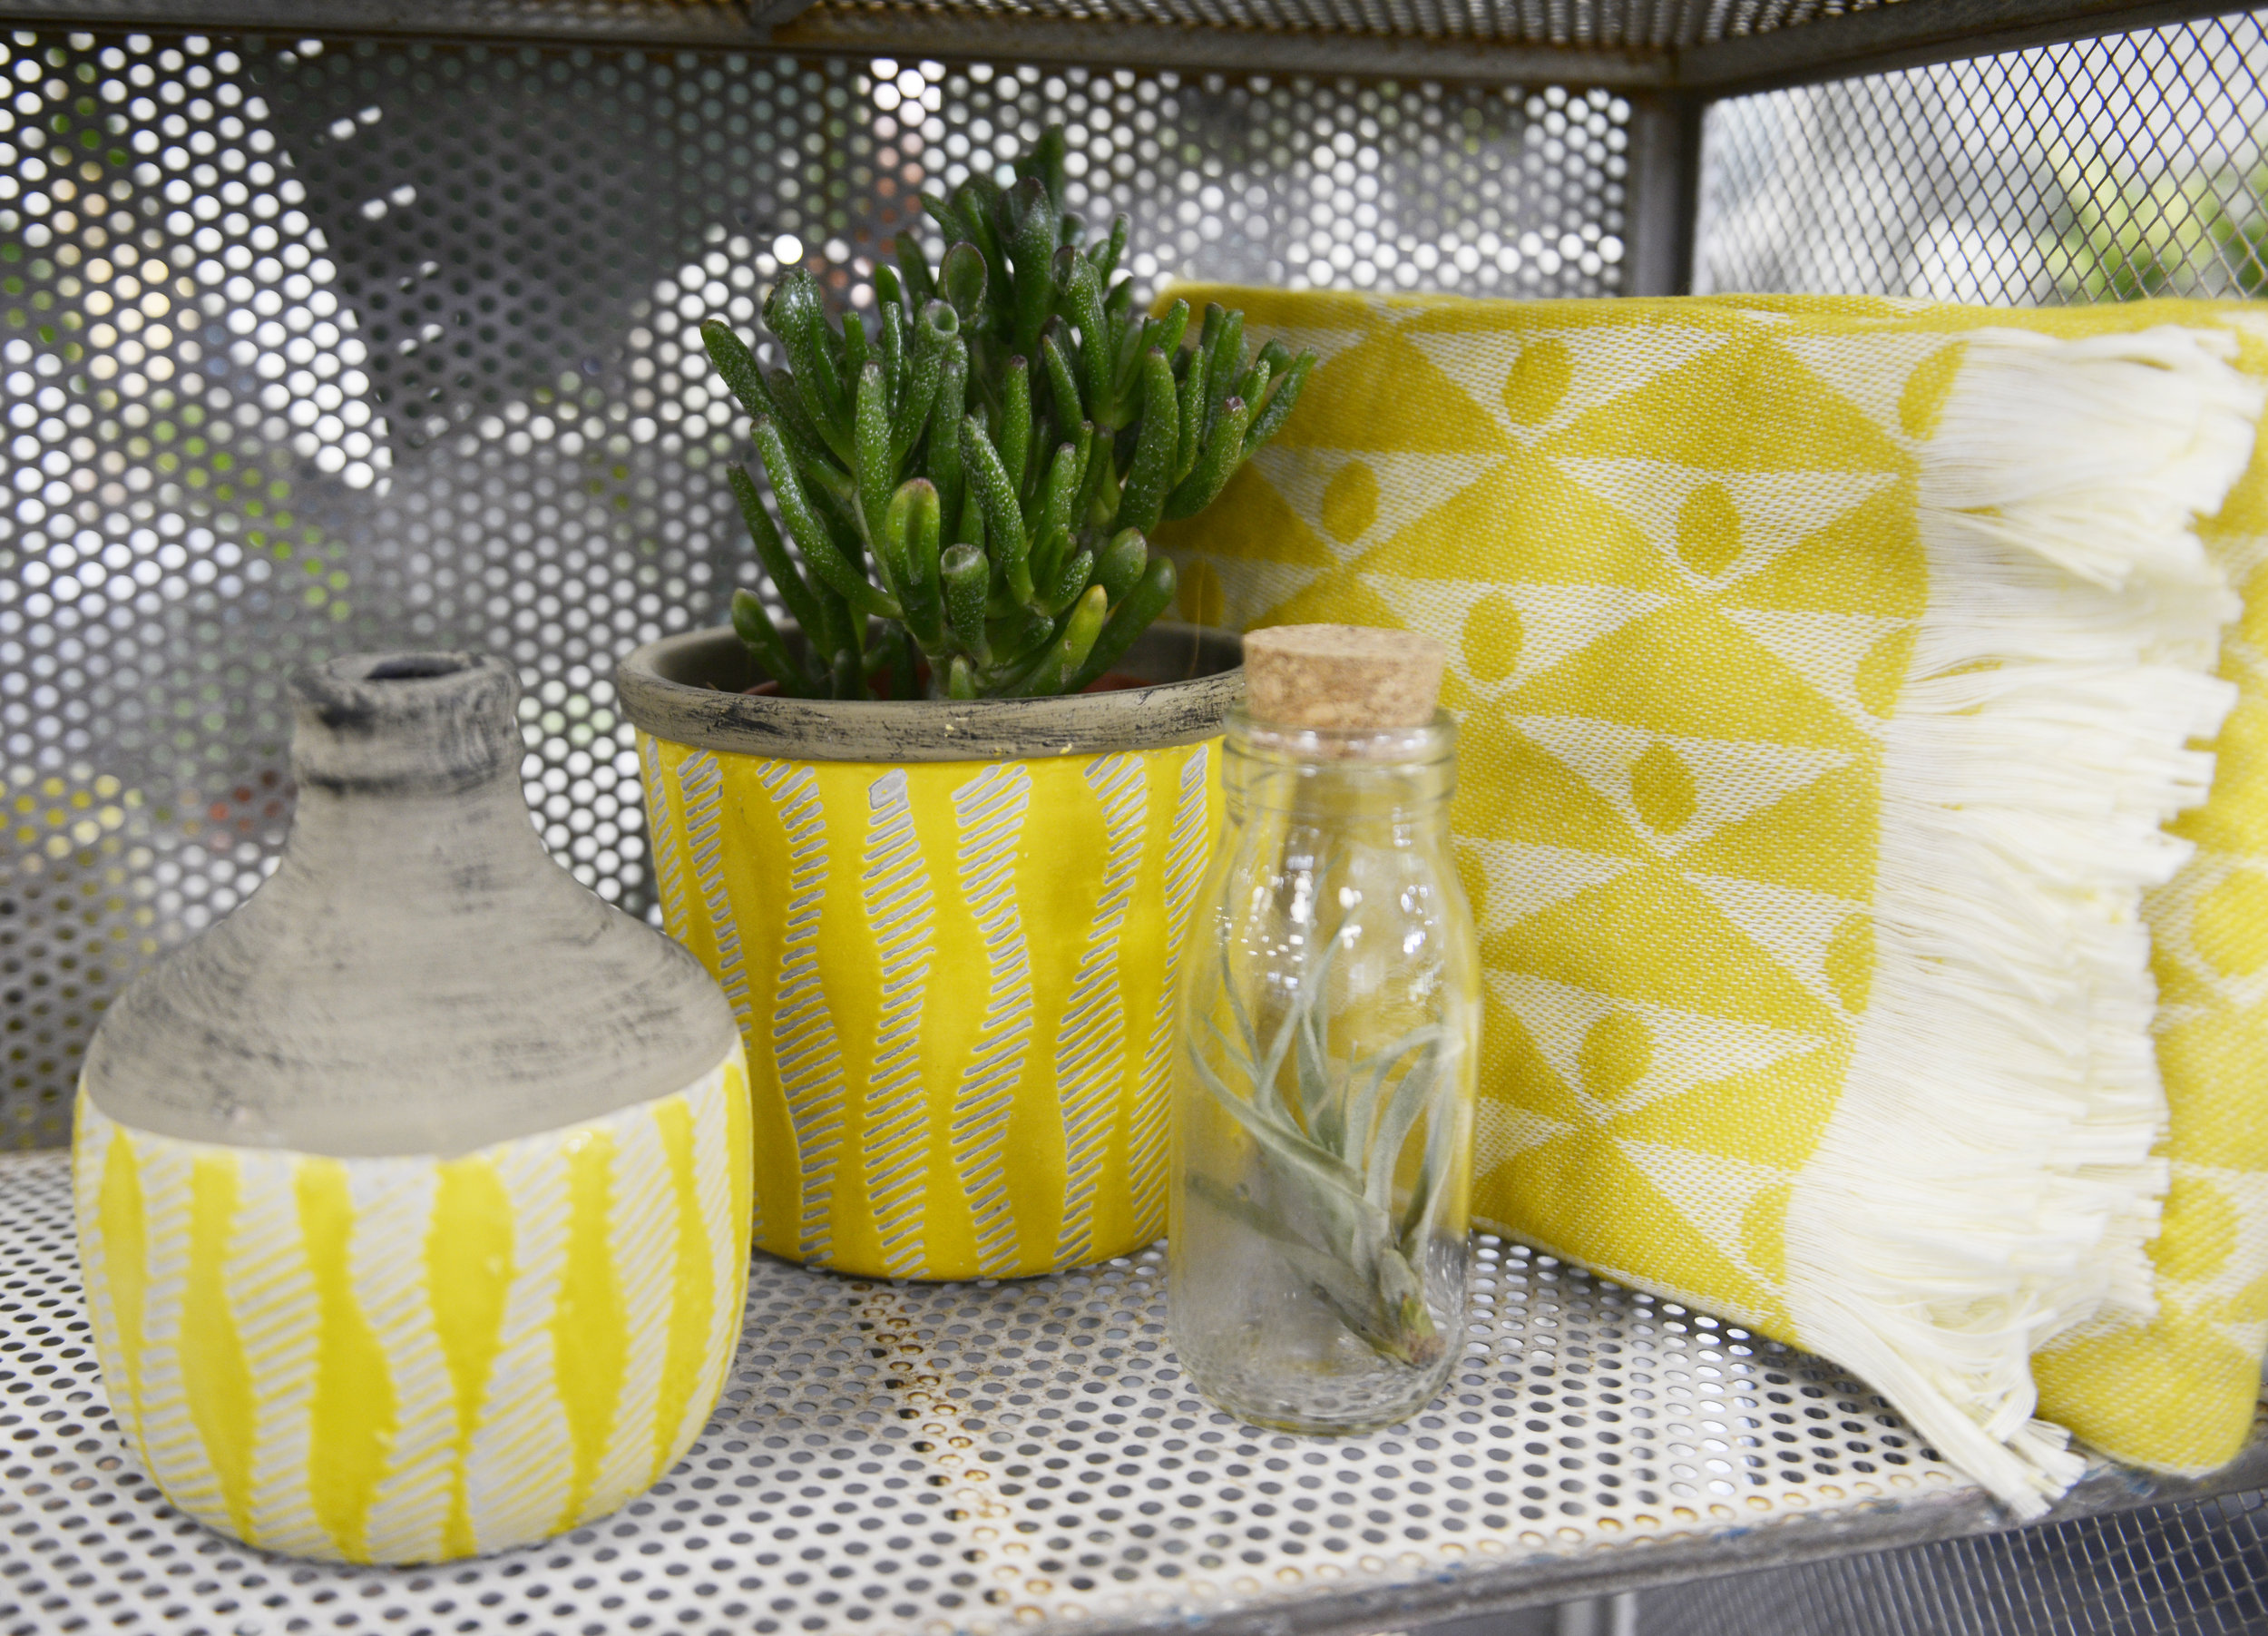 And they call it mellow yellow. - The weather has let us down a bit this week but when we have such stylish yellow homeware who needs sunshine!